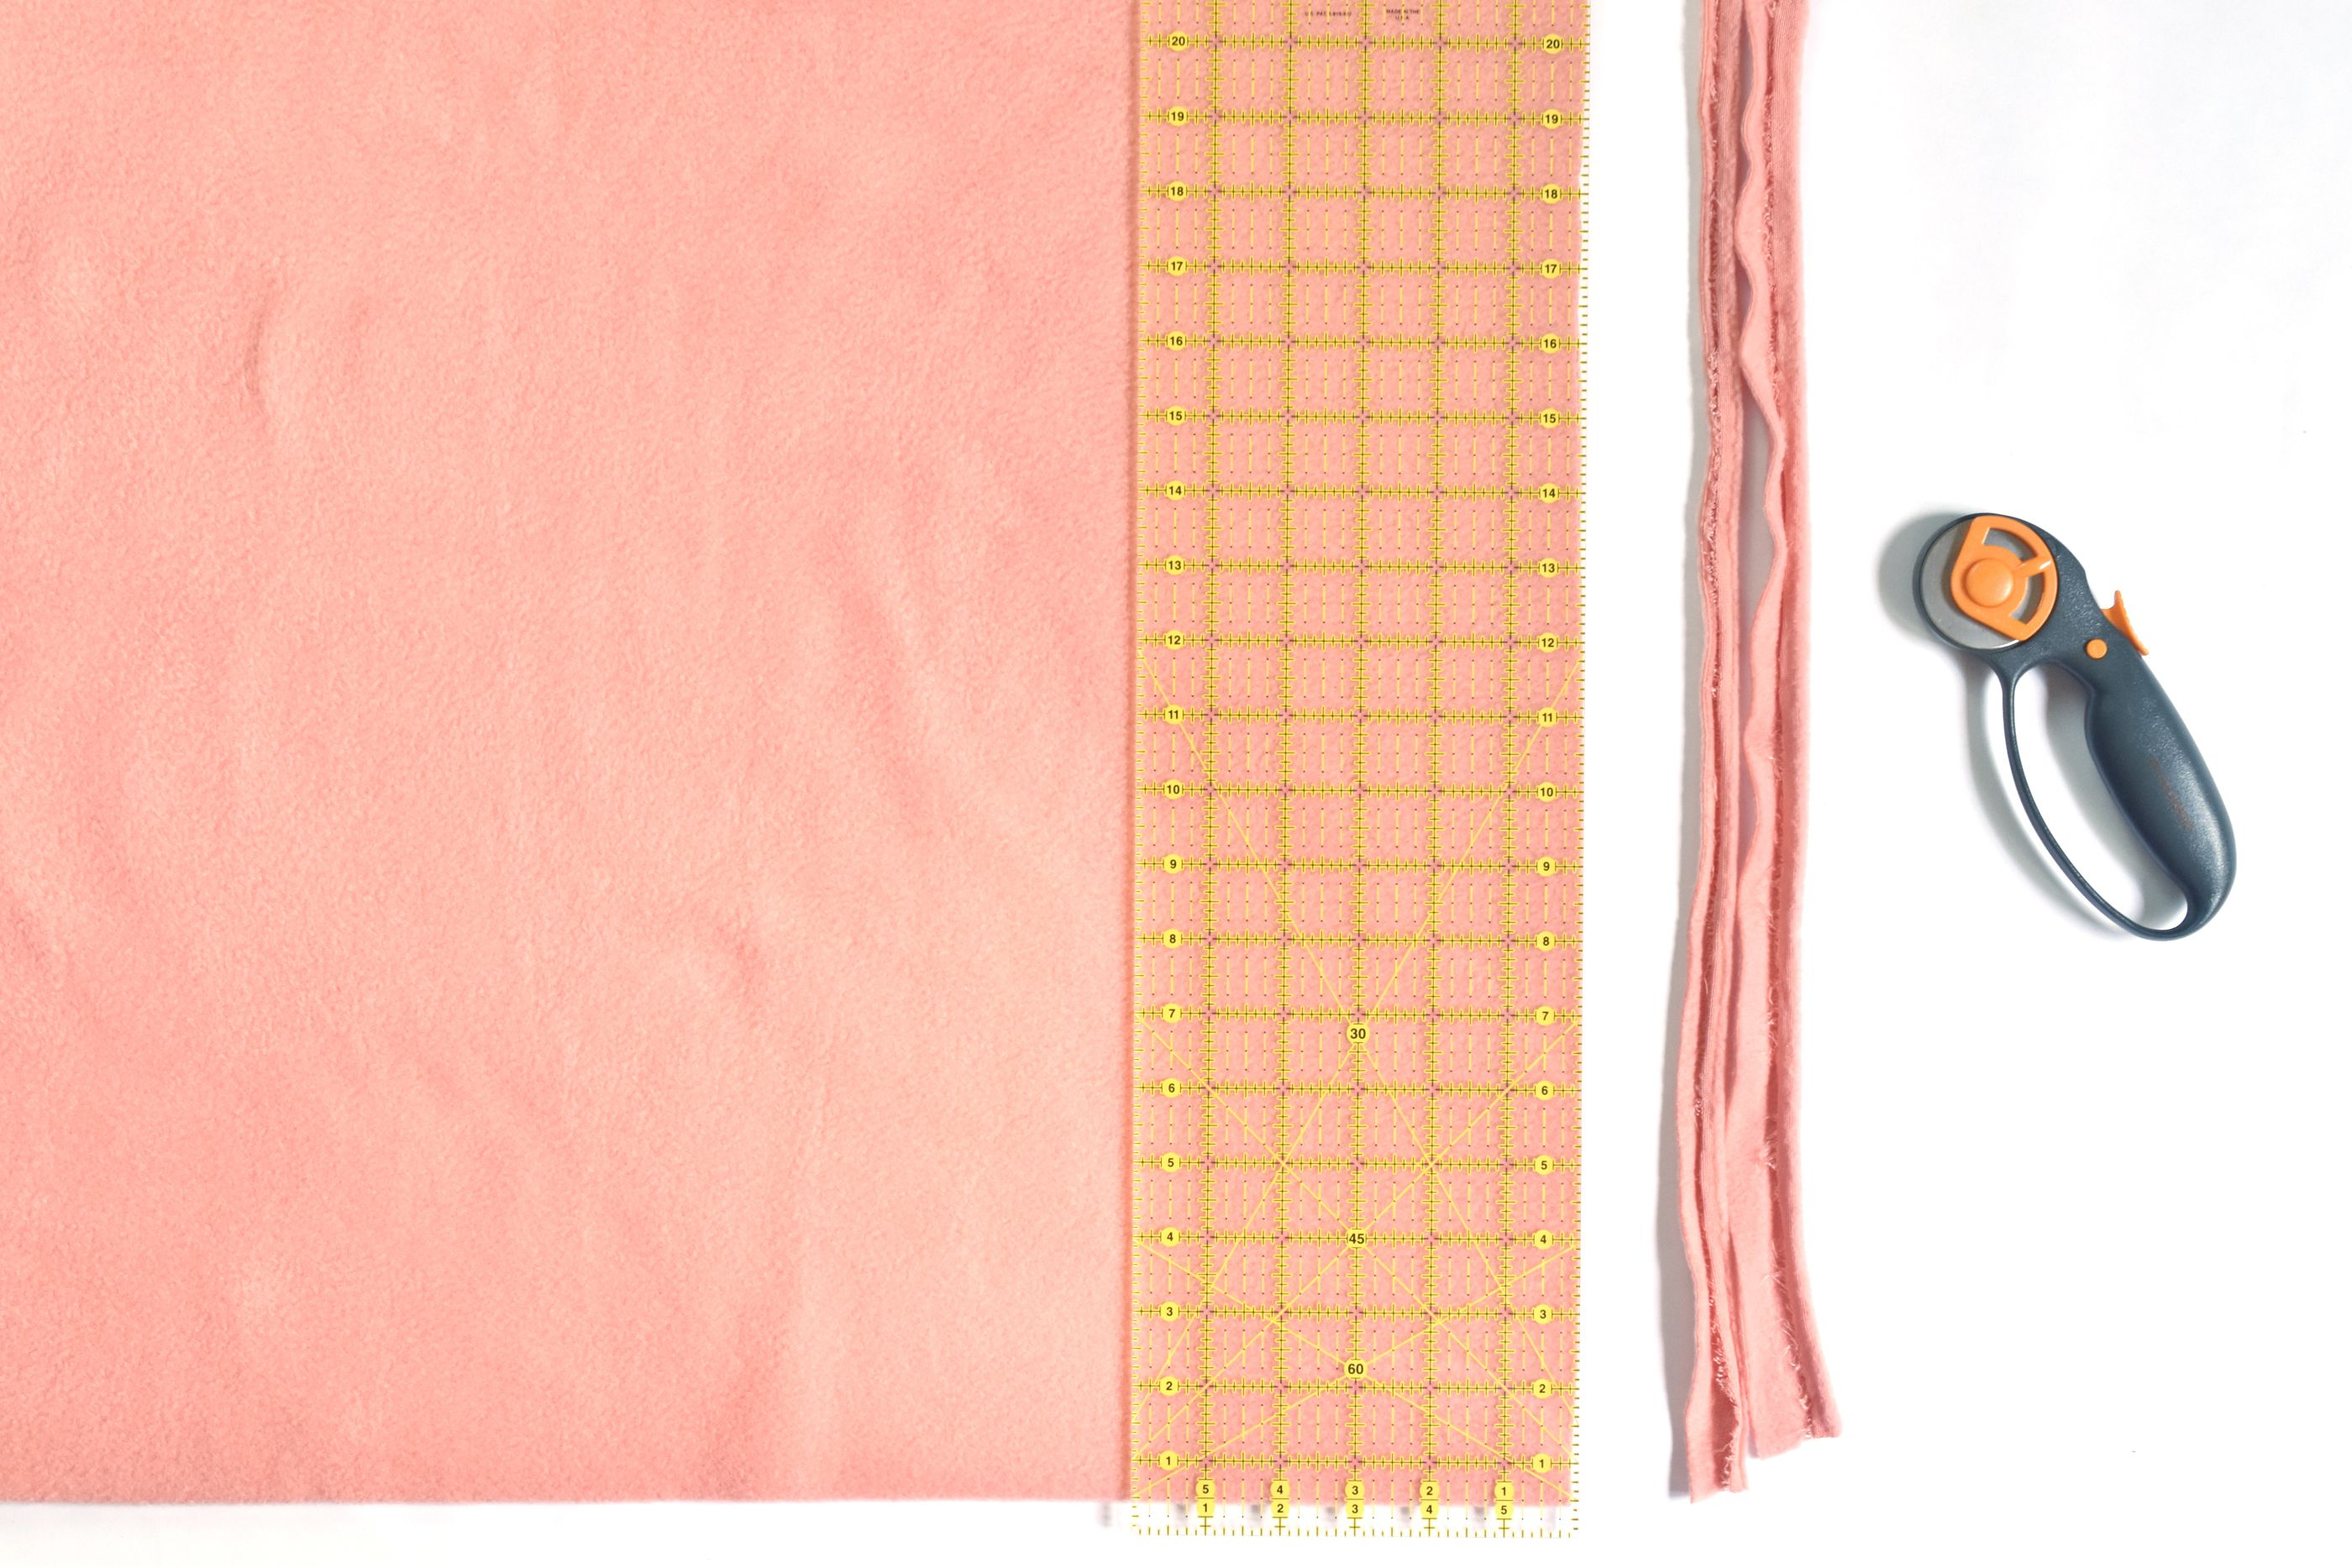 How to Make a Snuggle Blanket With Sleeves